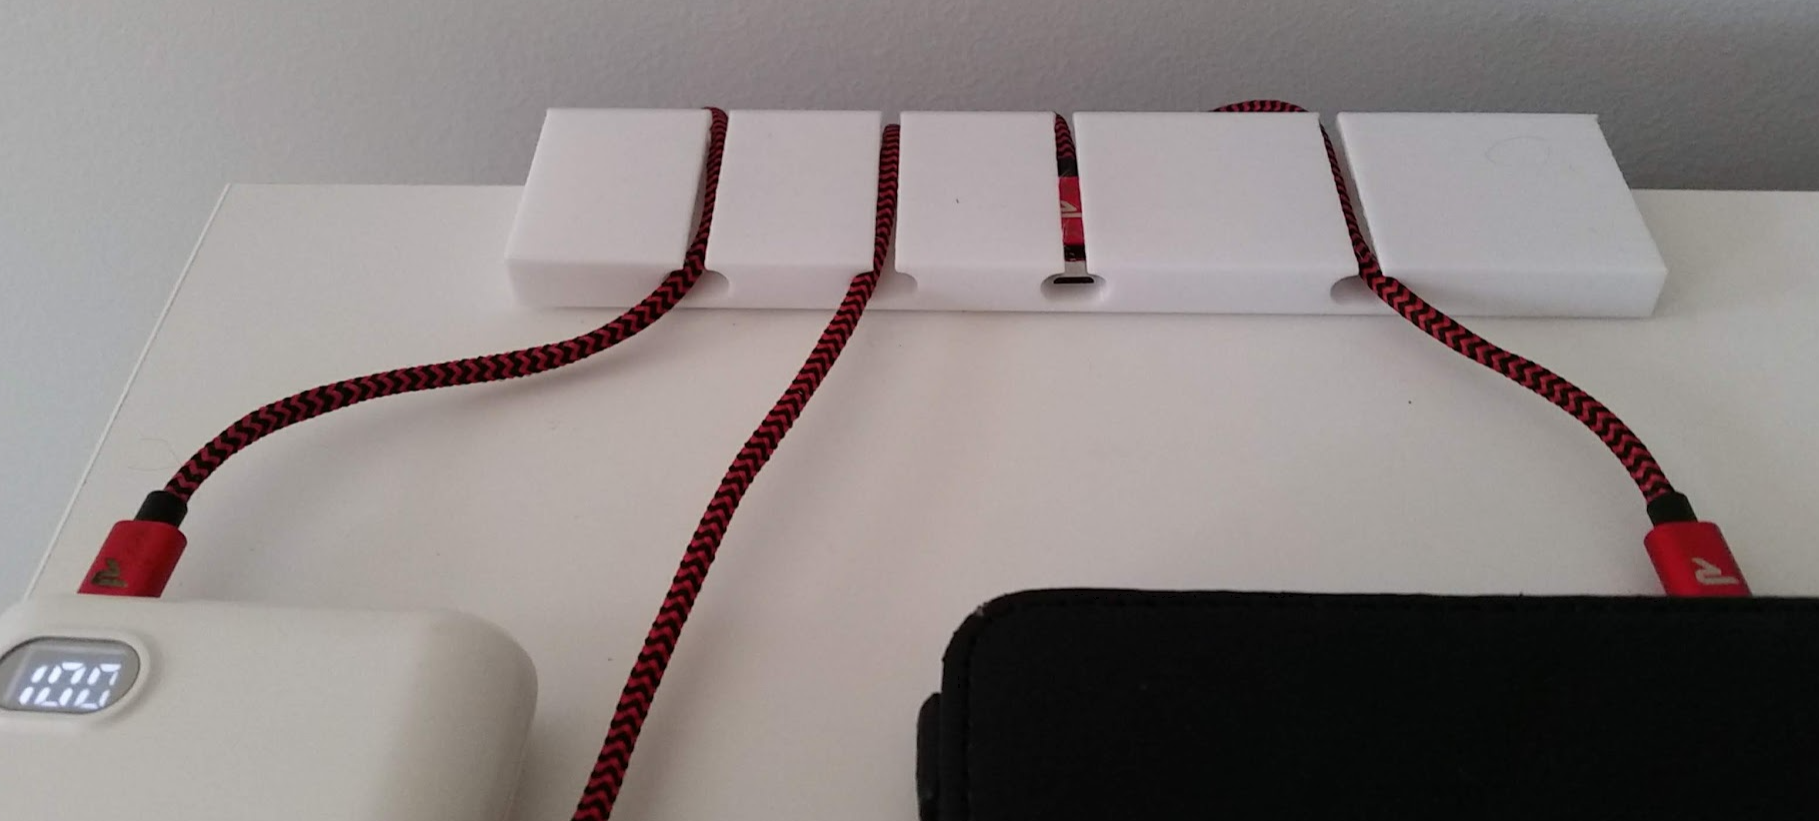 22a charging cables